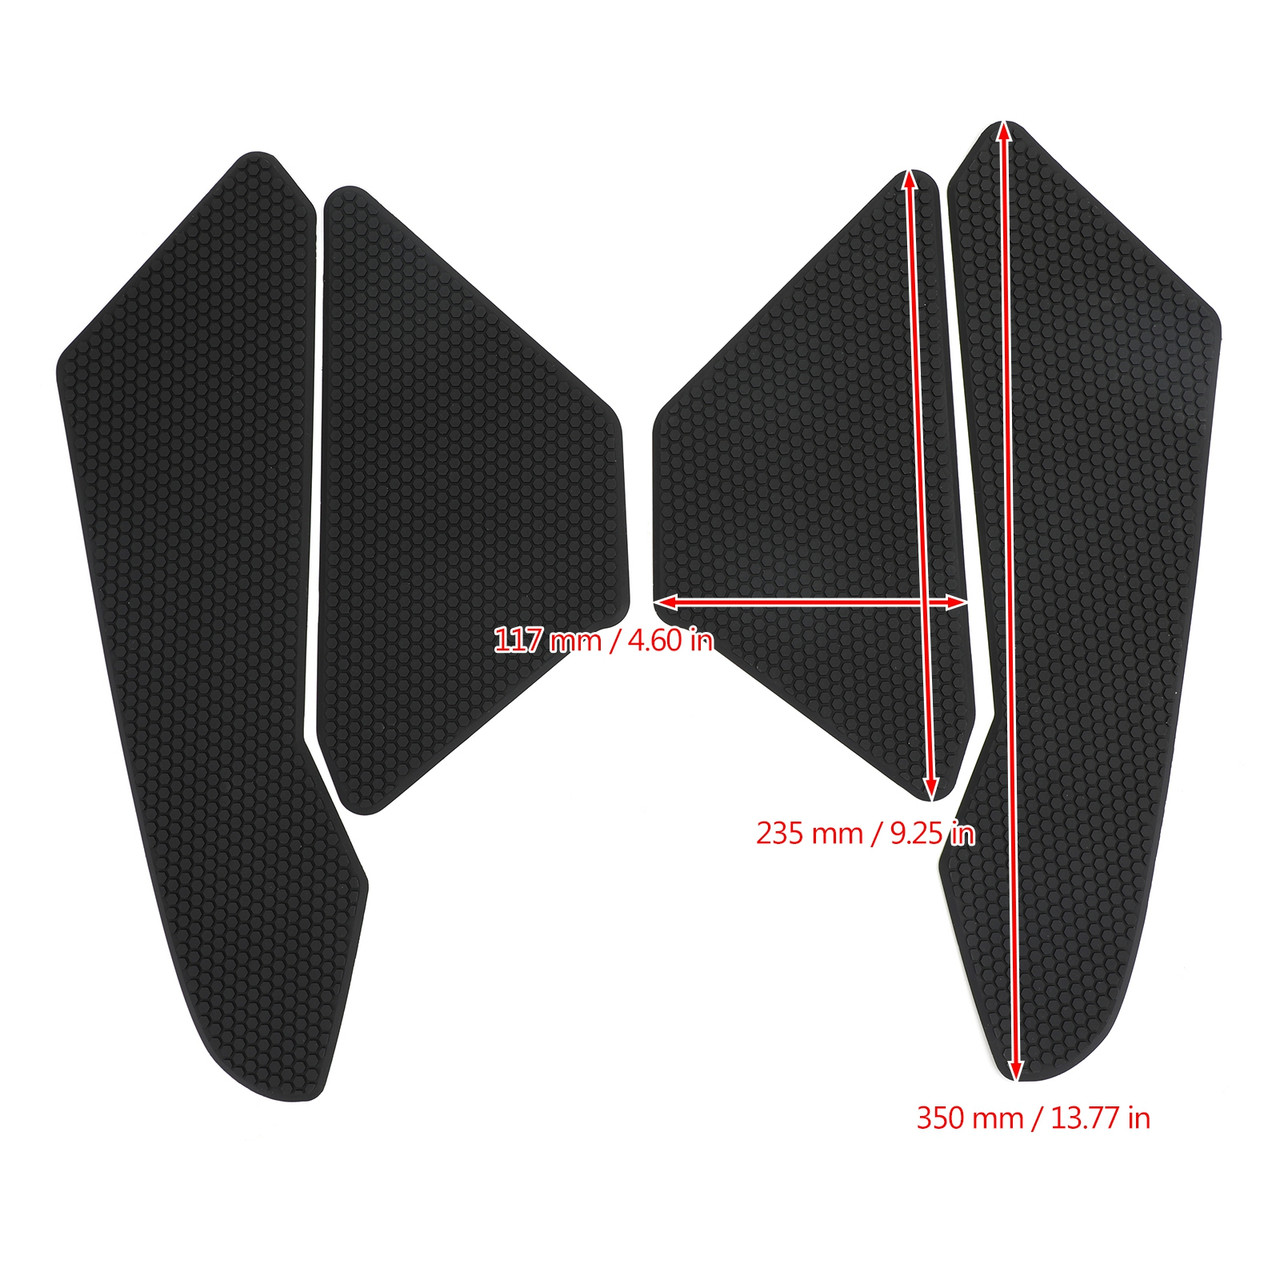 Tank Traction Pad Side Gas Knee Grip Protector Fit For Honda CBR1000RR Fireblade/SP/SP2 17-19 Black